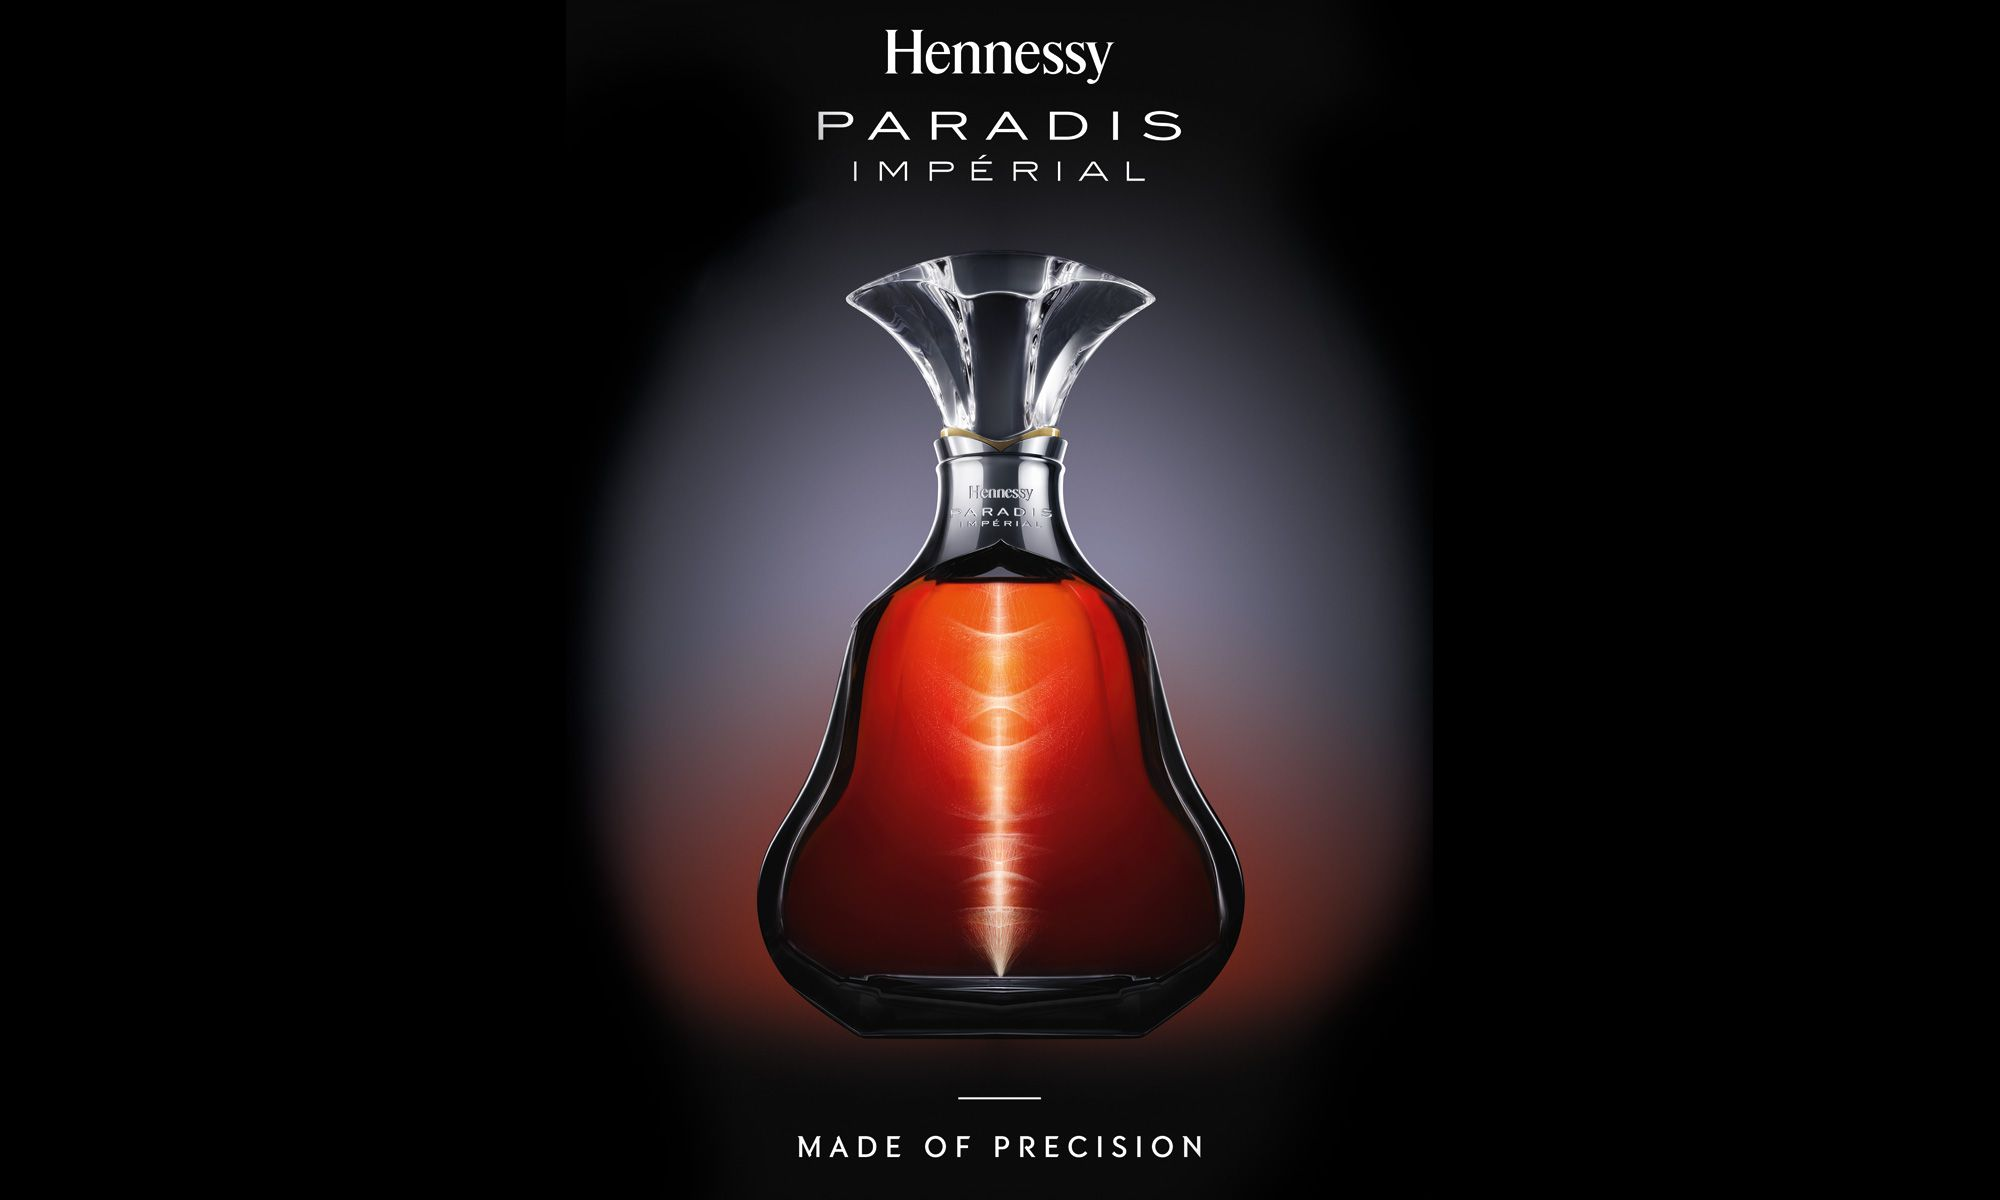 Hennessy's Crown Jewel: 7 Reasons To Enjoy The Hennessy Paradis Impérial